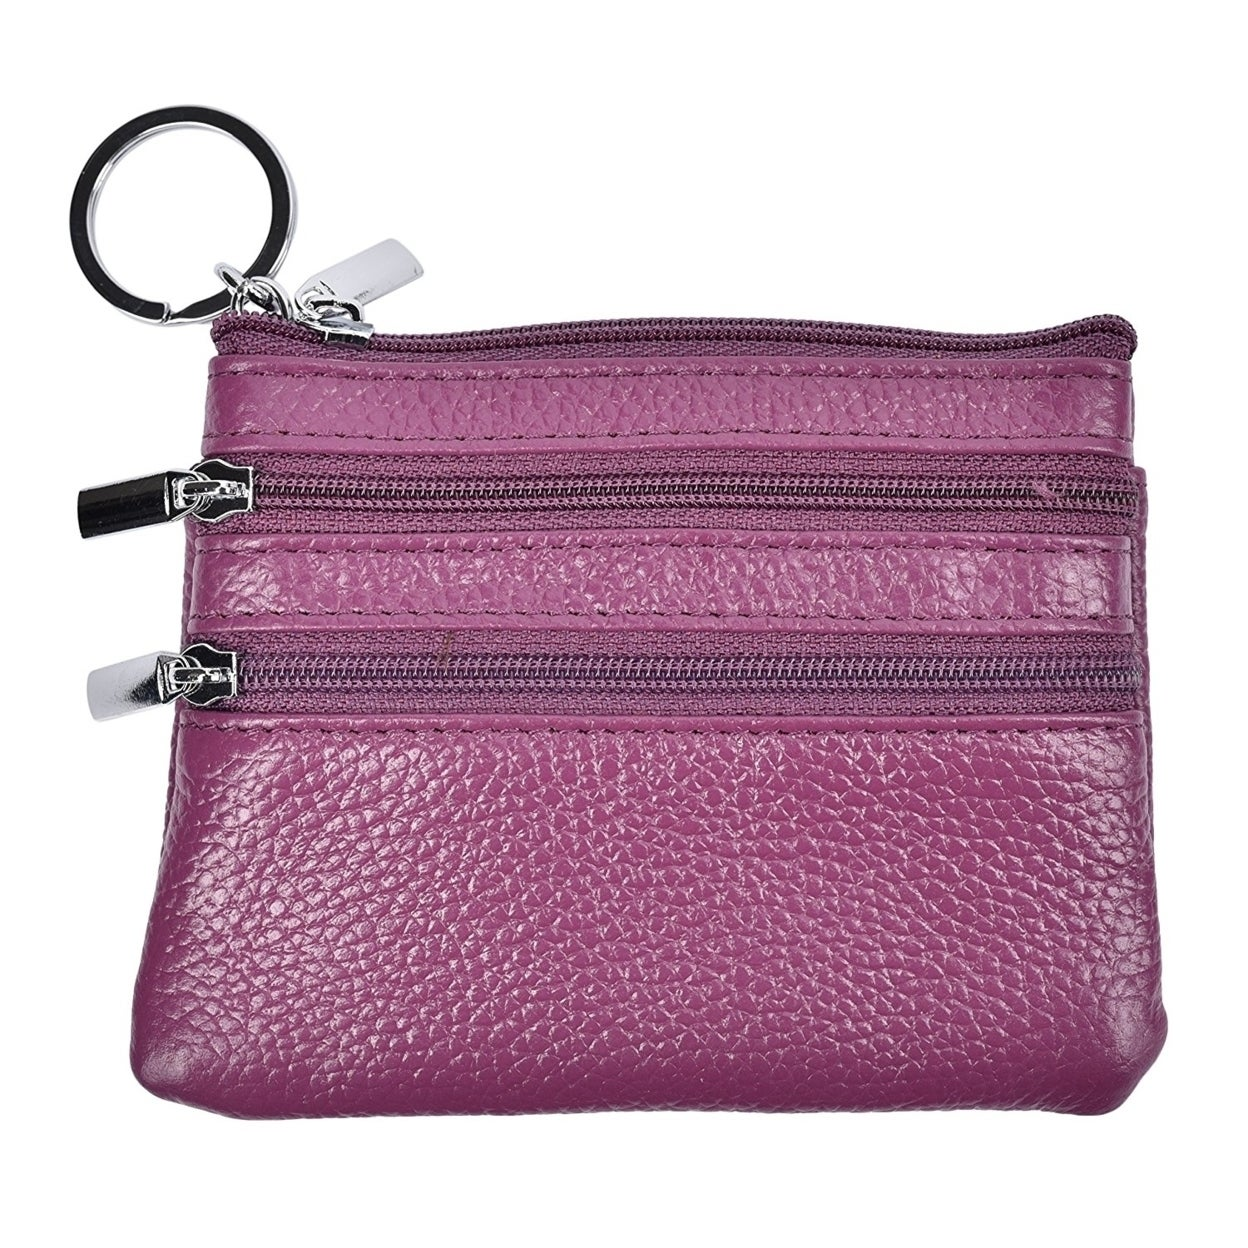 72ff42dec4f Shop Womens Mini Coin Purse Wallet Genuine Leather Zipper Pouch With Key  Ring - Free Shipping On Orders Over  45 - Overstock - 23119500